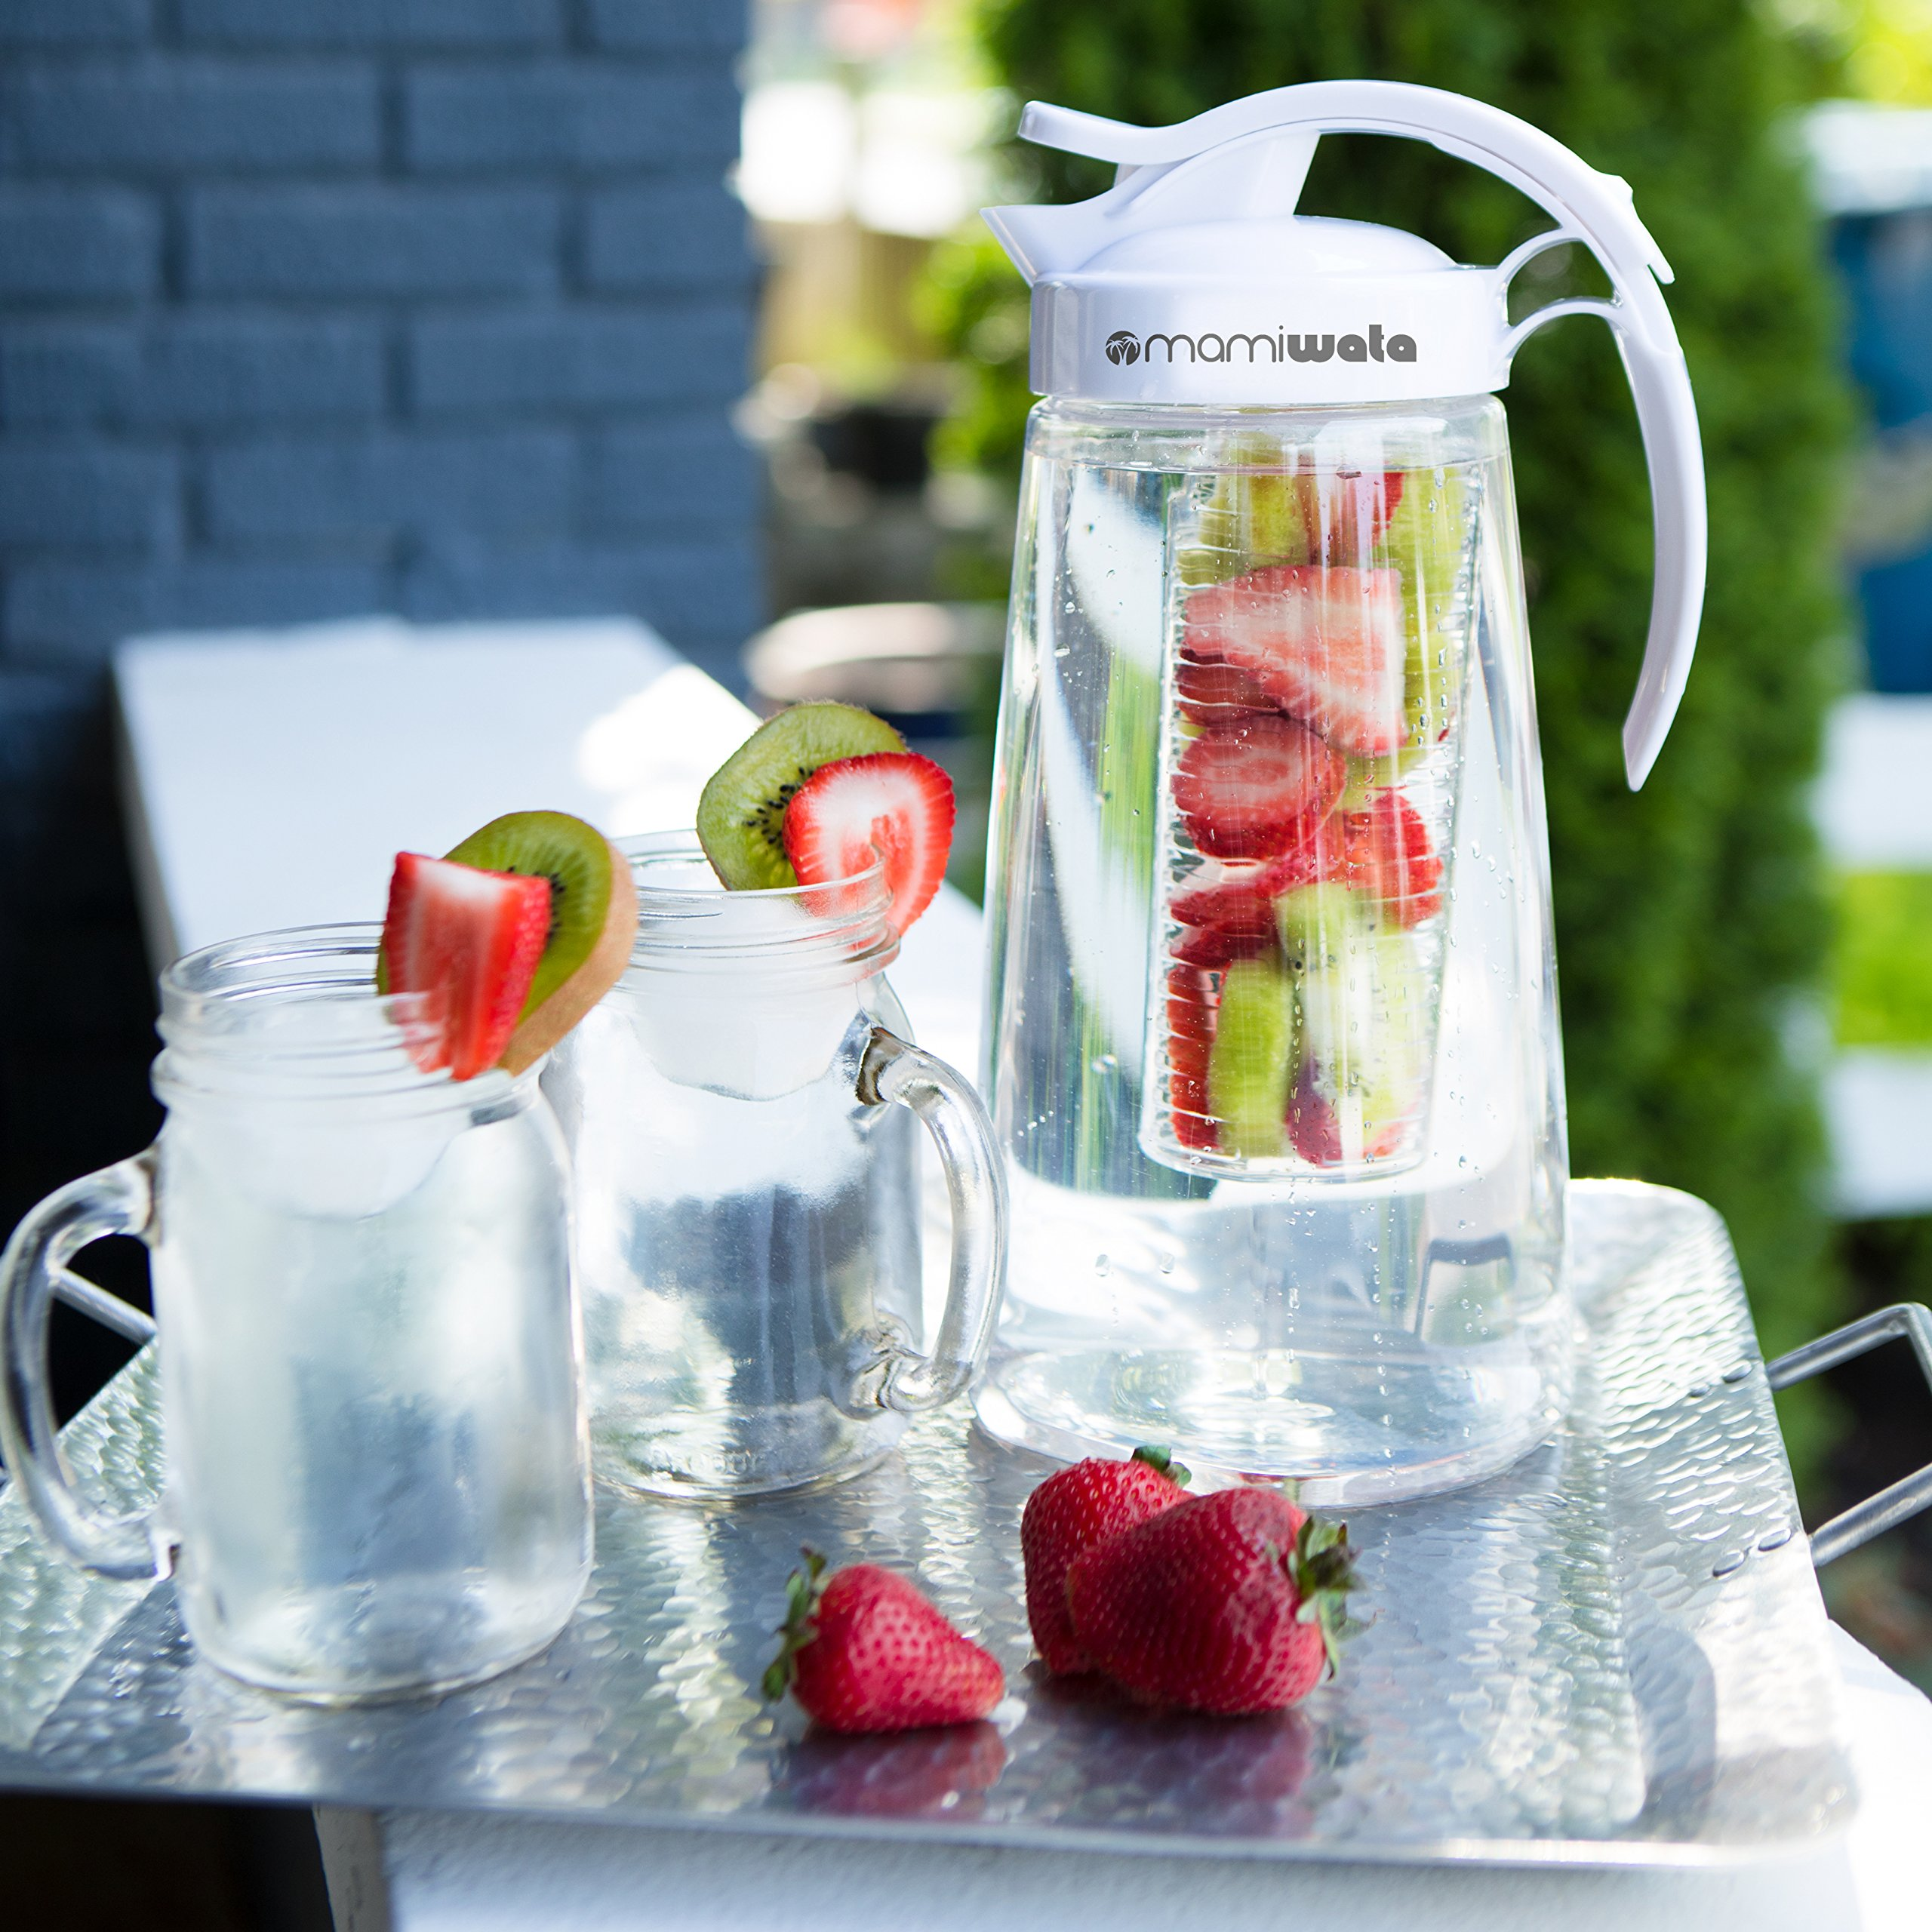 Fruit & Tea Infusion Water Pitcher - The PERFECT Mothers Day Gift - Free Ice Ball Maker - Free Infused Water Recipe Booklet - Includes Shatterproof Jug, Fruit Infuser, and Tea Infuser by MAMI WATA (Image #2)